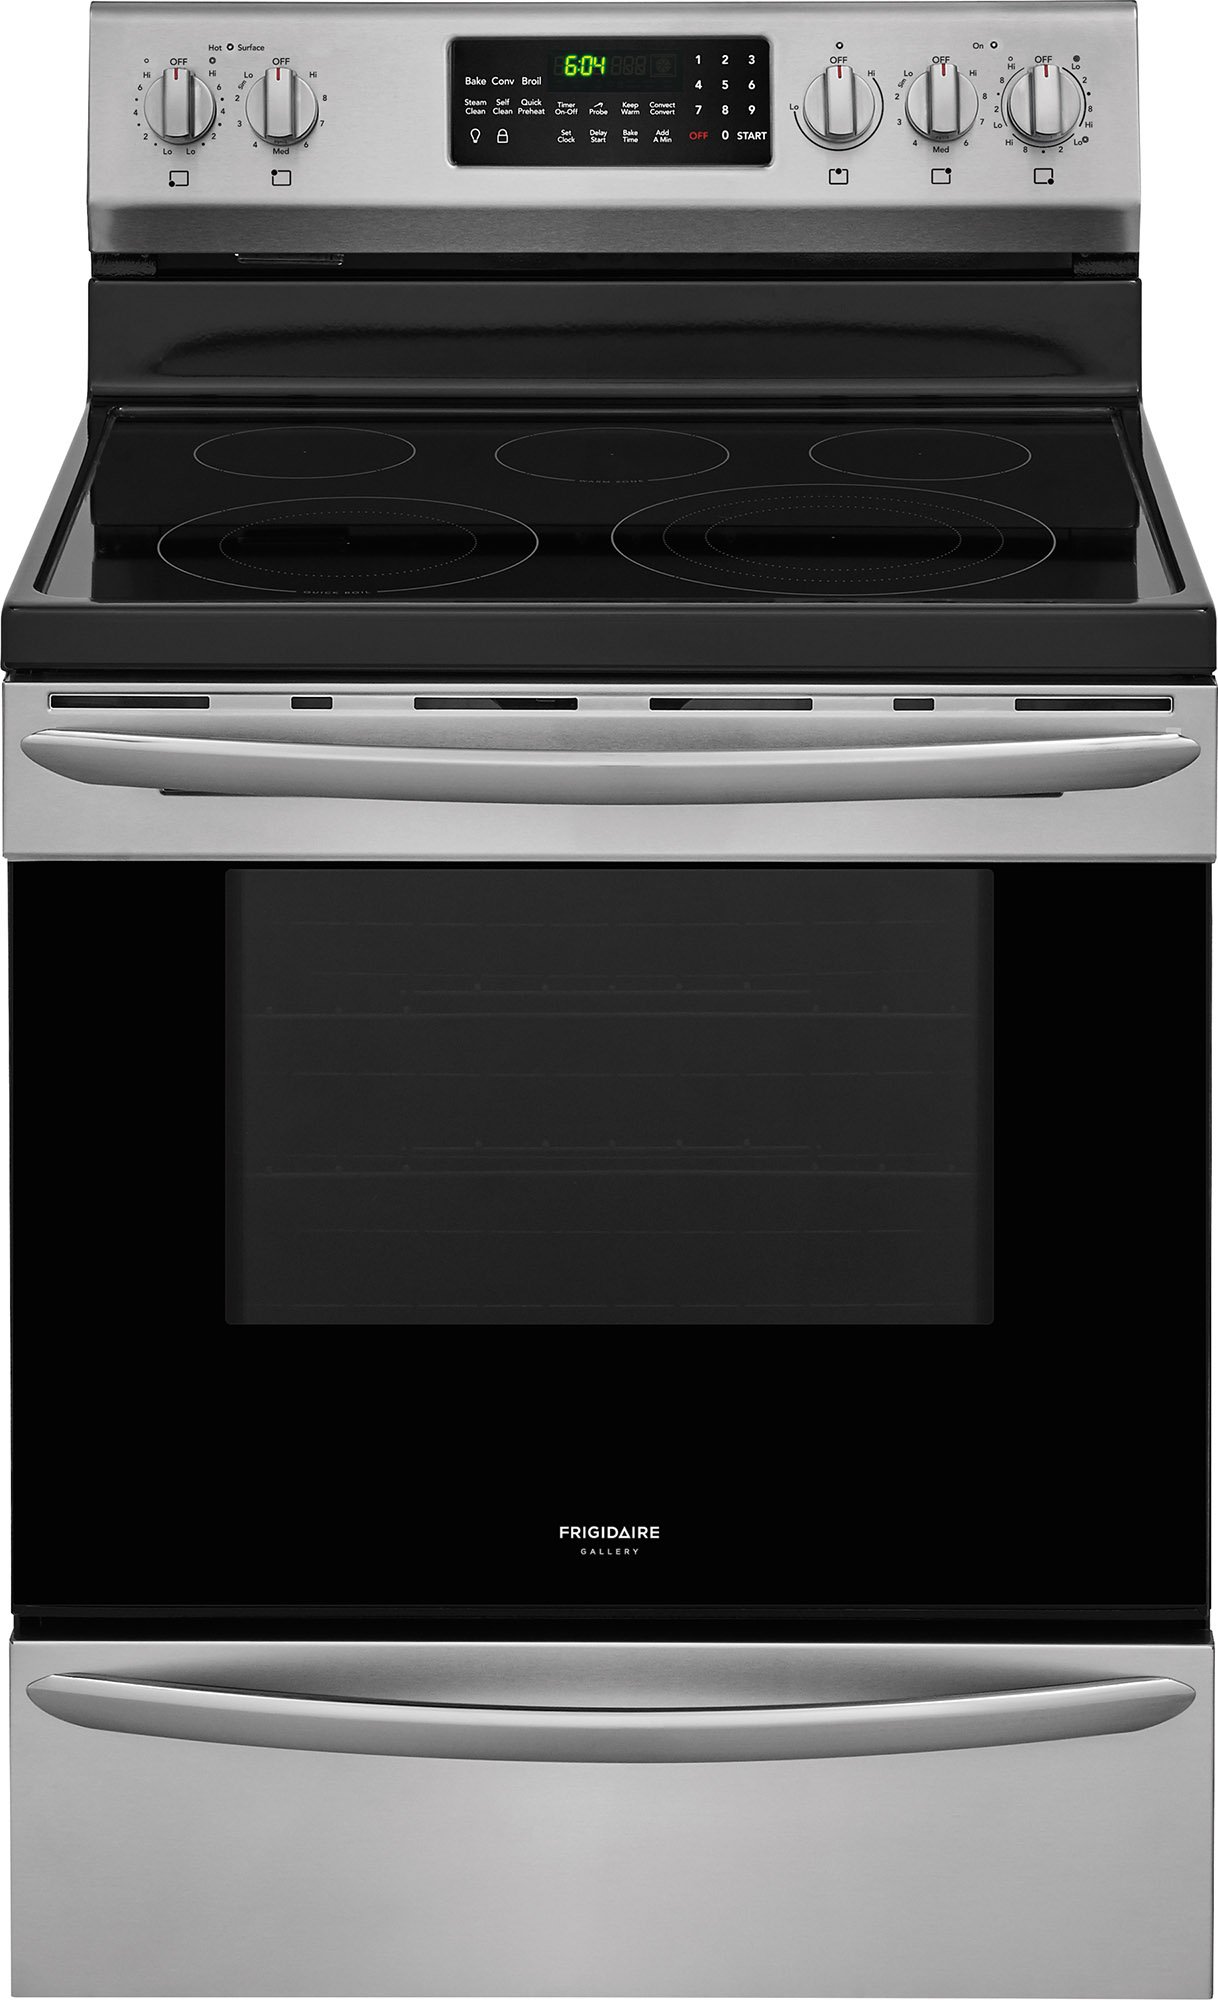 Frigidaire Gallery 30 Free Standing Electric Range Stainless Steel Fgef3059tf